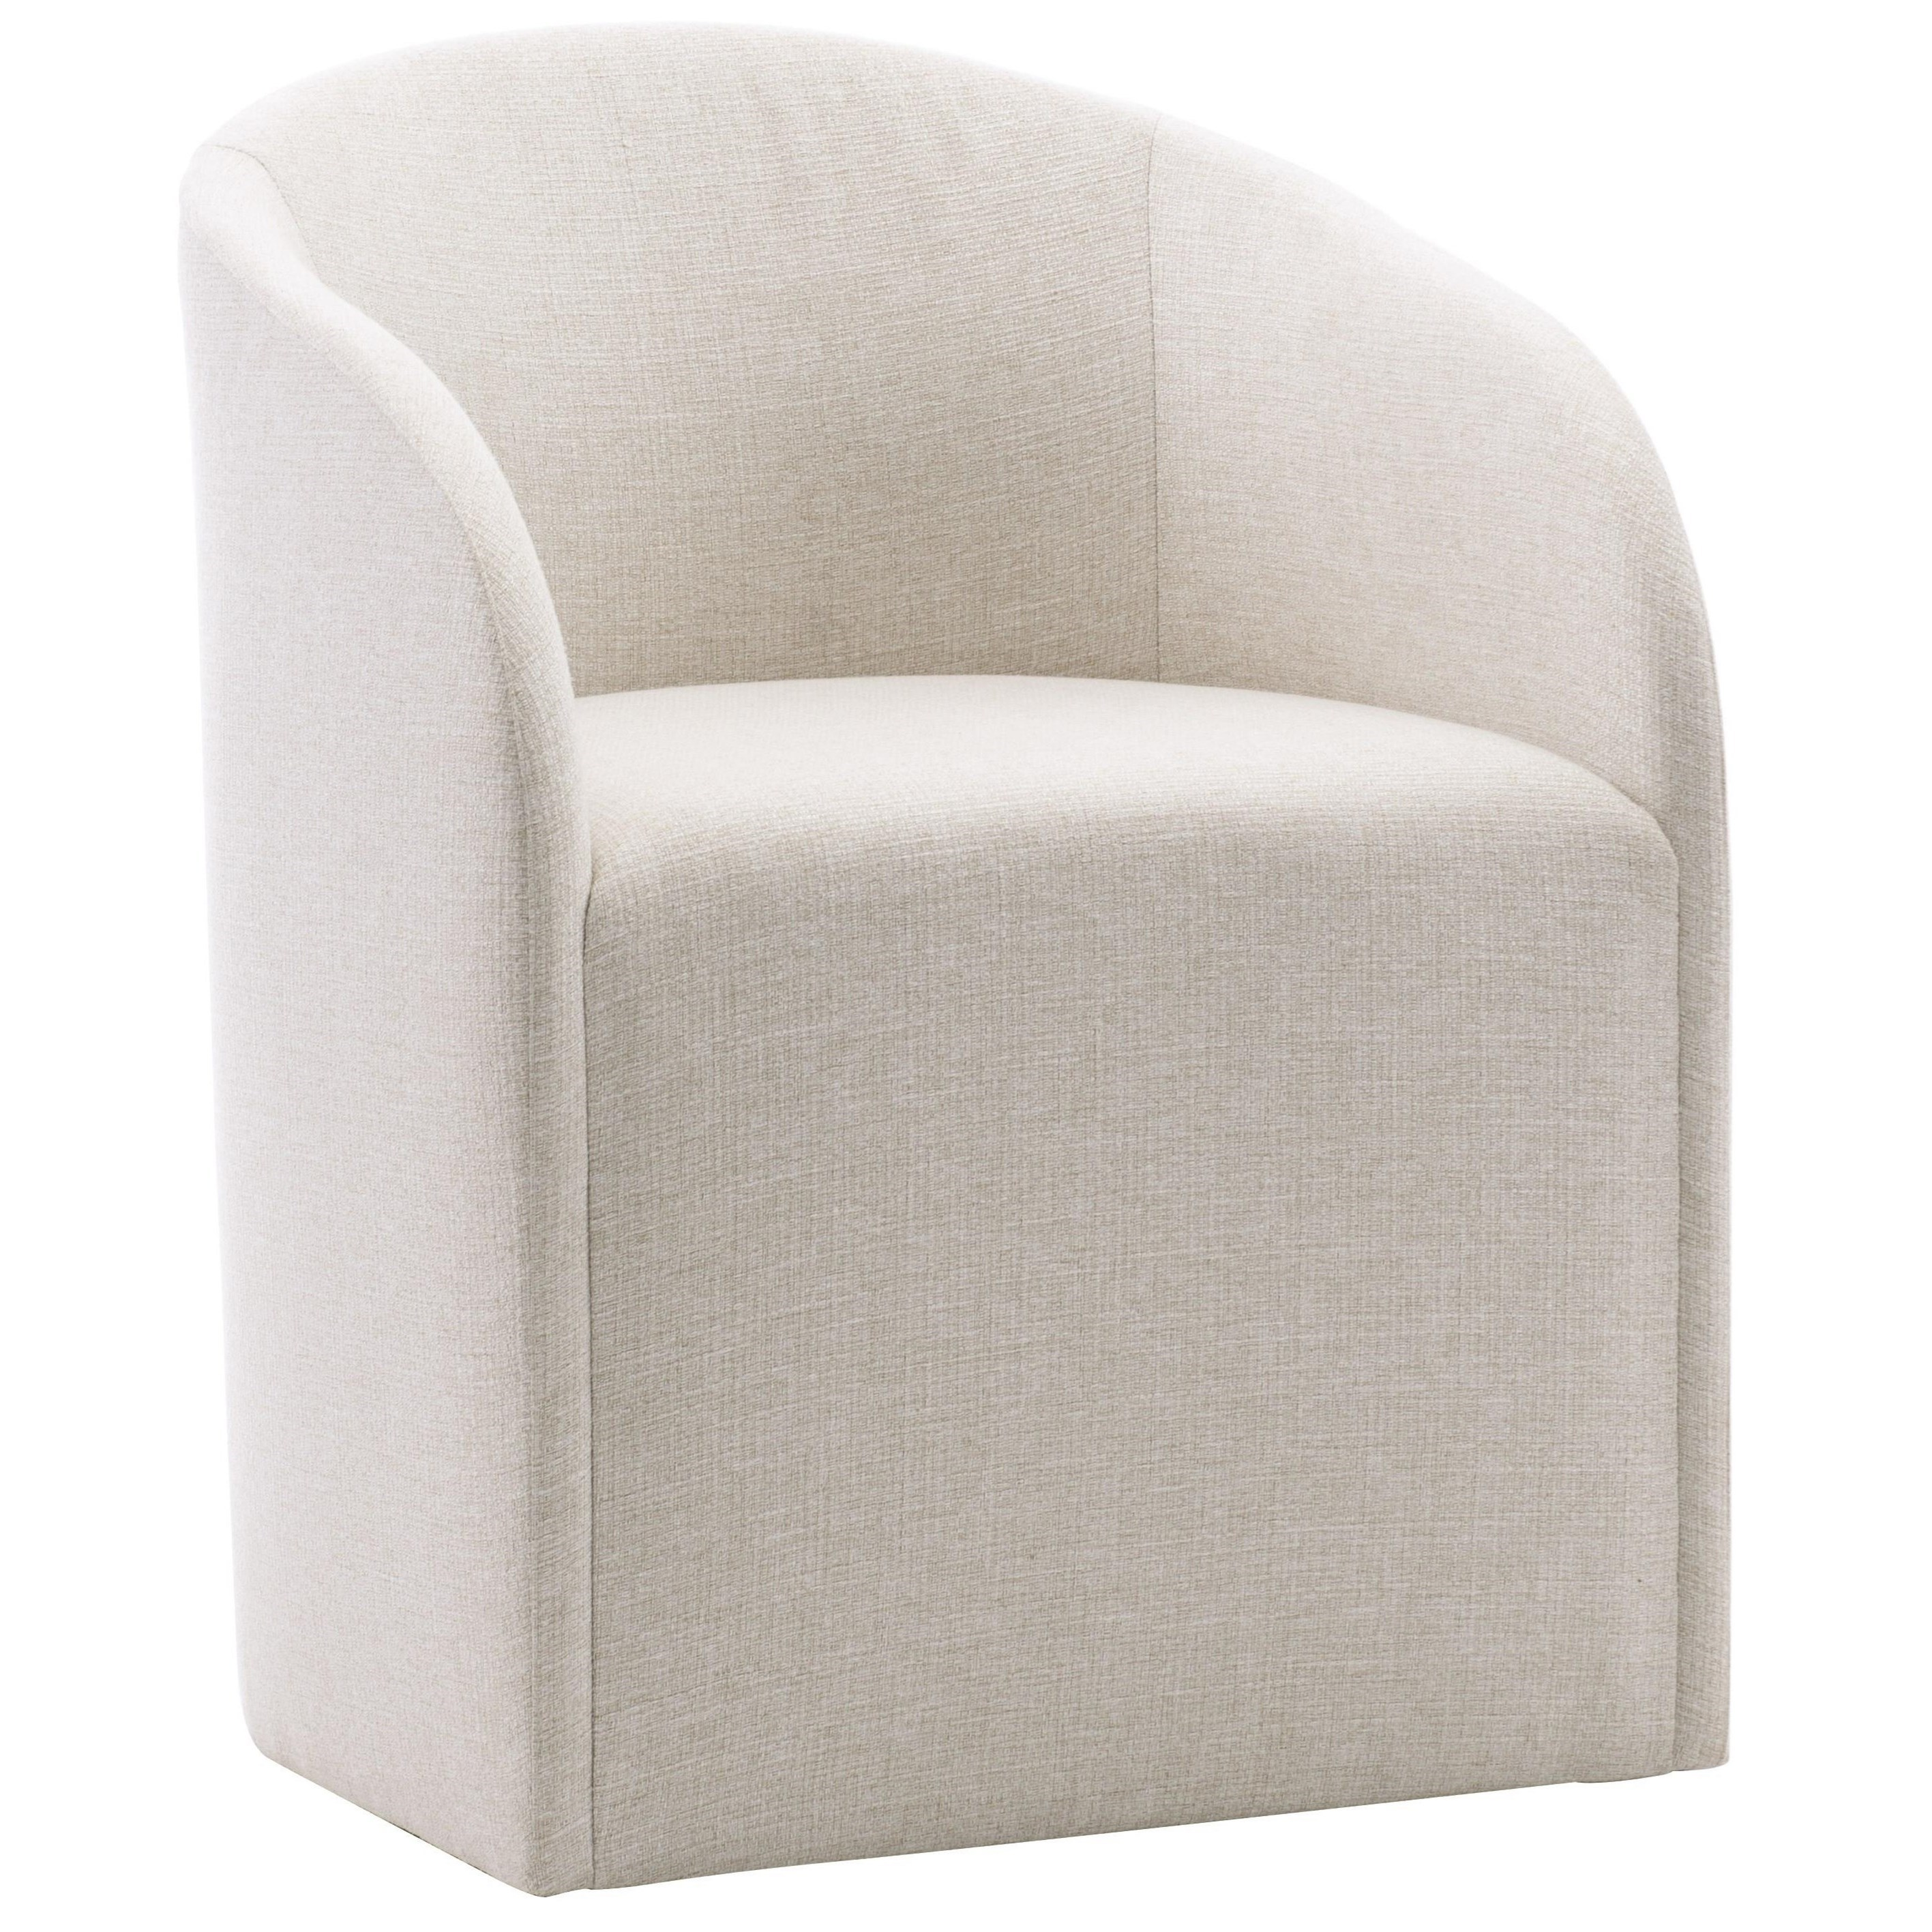 Loft - Logan Square Finch Dining Chair by Bernhardt at Baer's Furniture